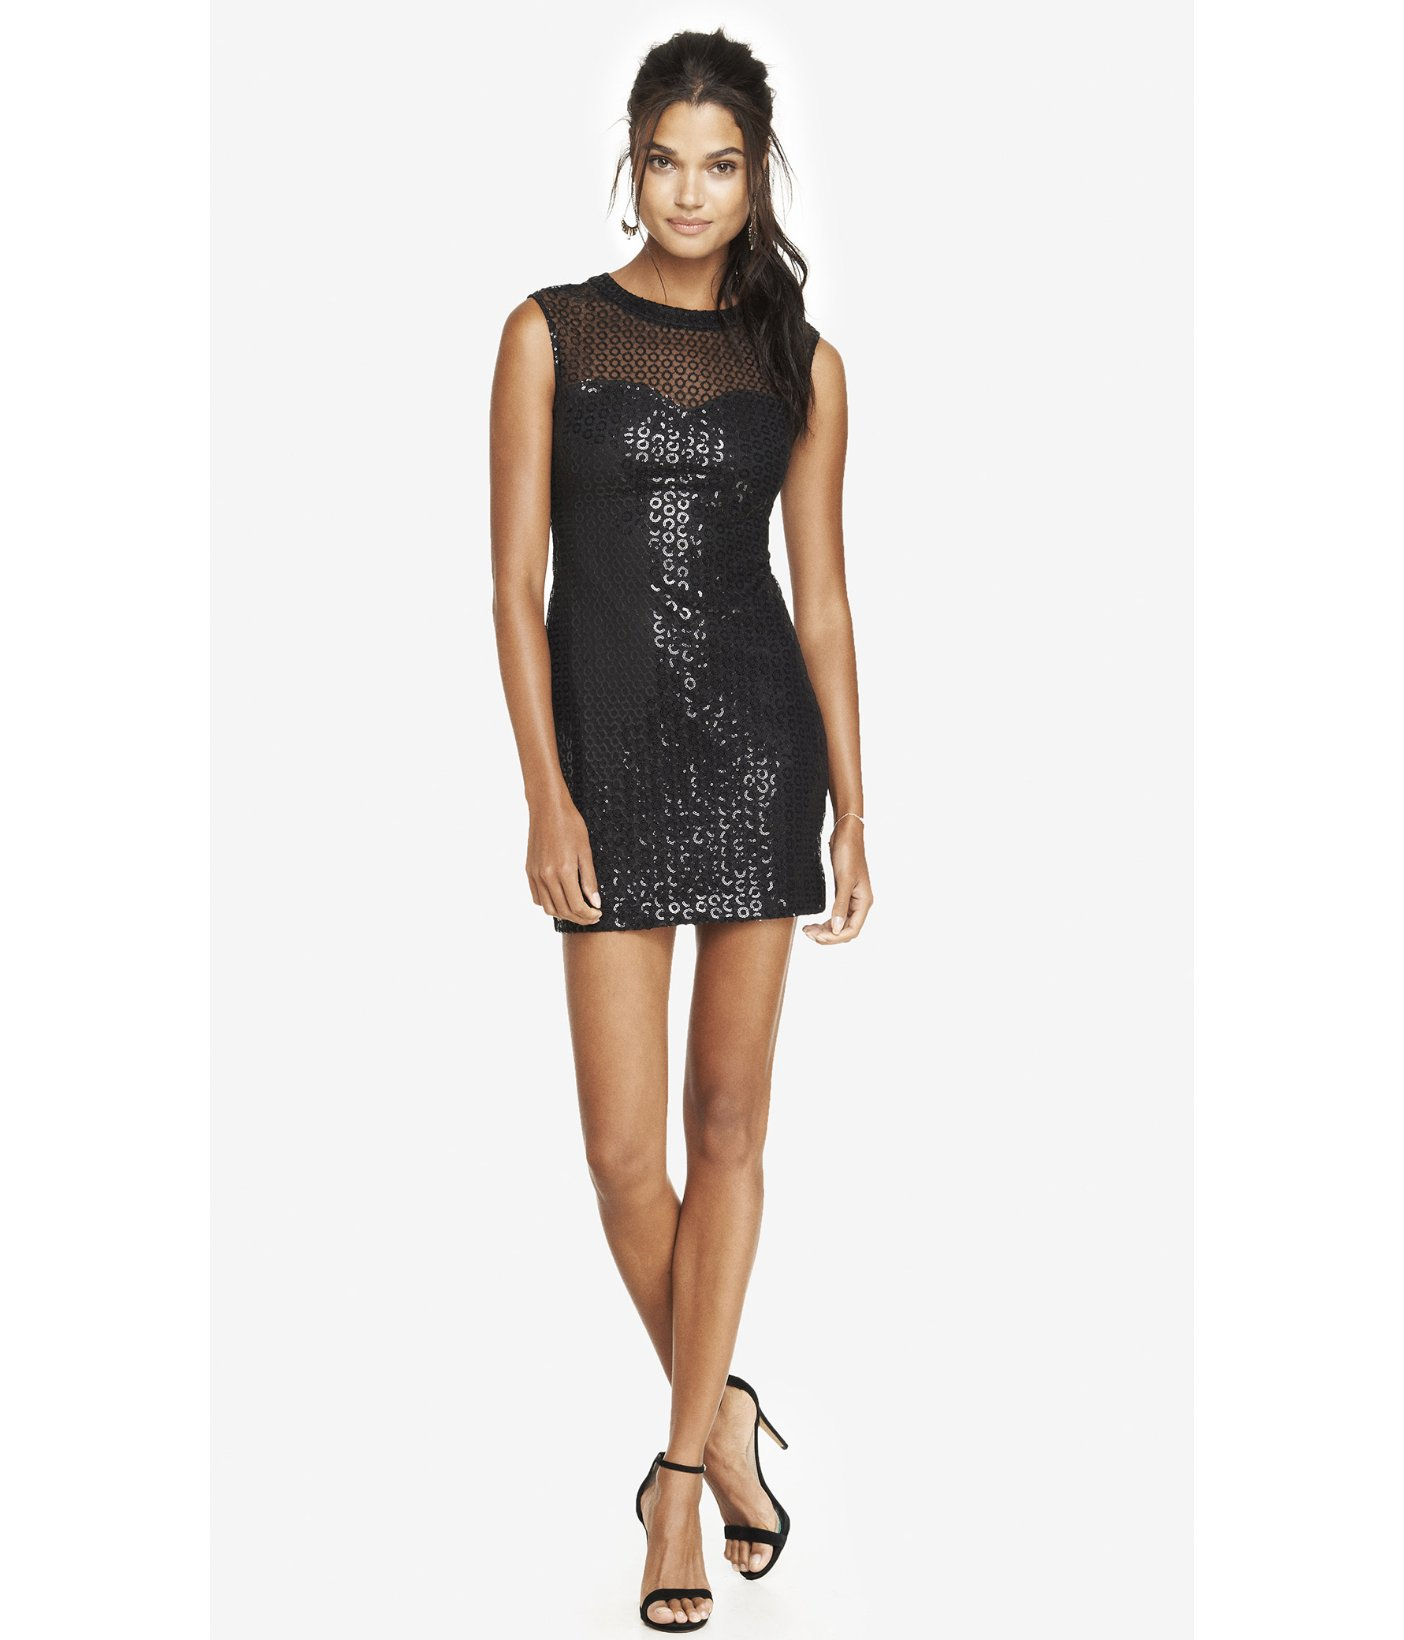 Shimmer and shine in a sequin dress from this collection of designer dresses. The radiant sequin gowns in this selection include several styles of dresses with sequins.